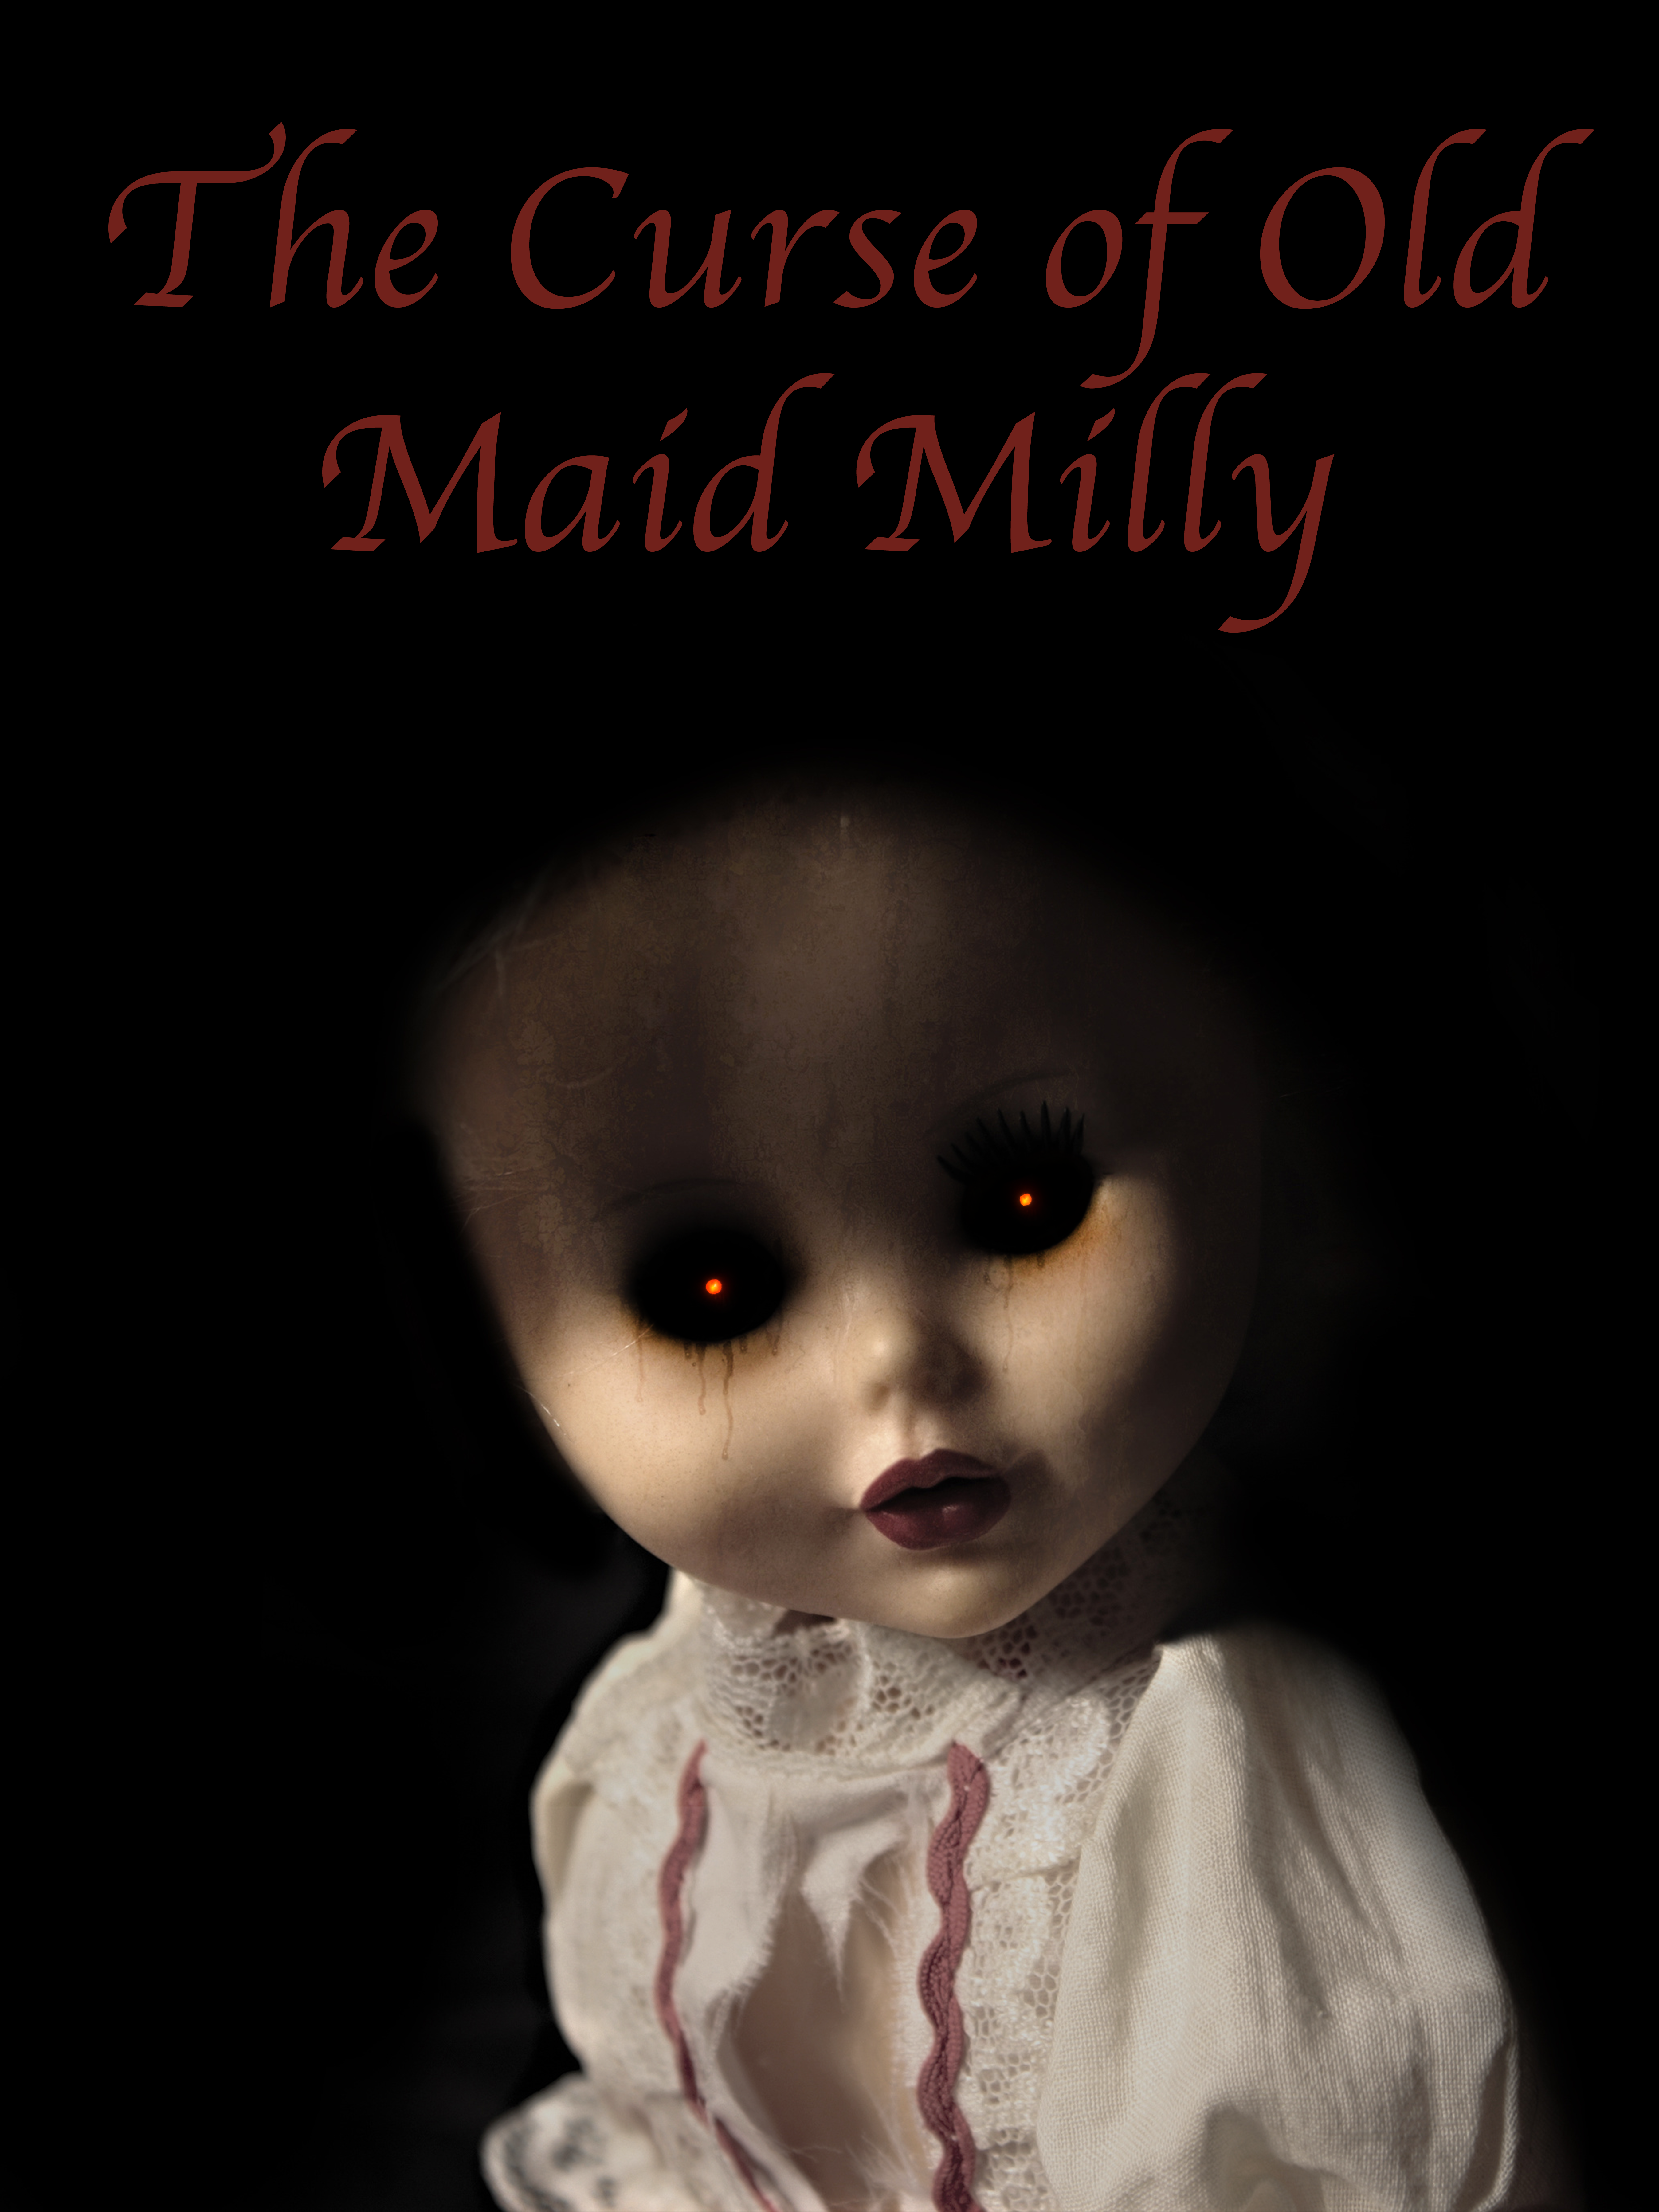 A doll depicting Old Maid Milly